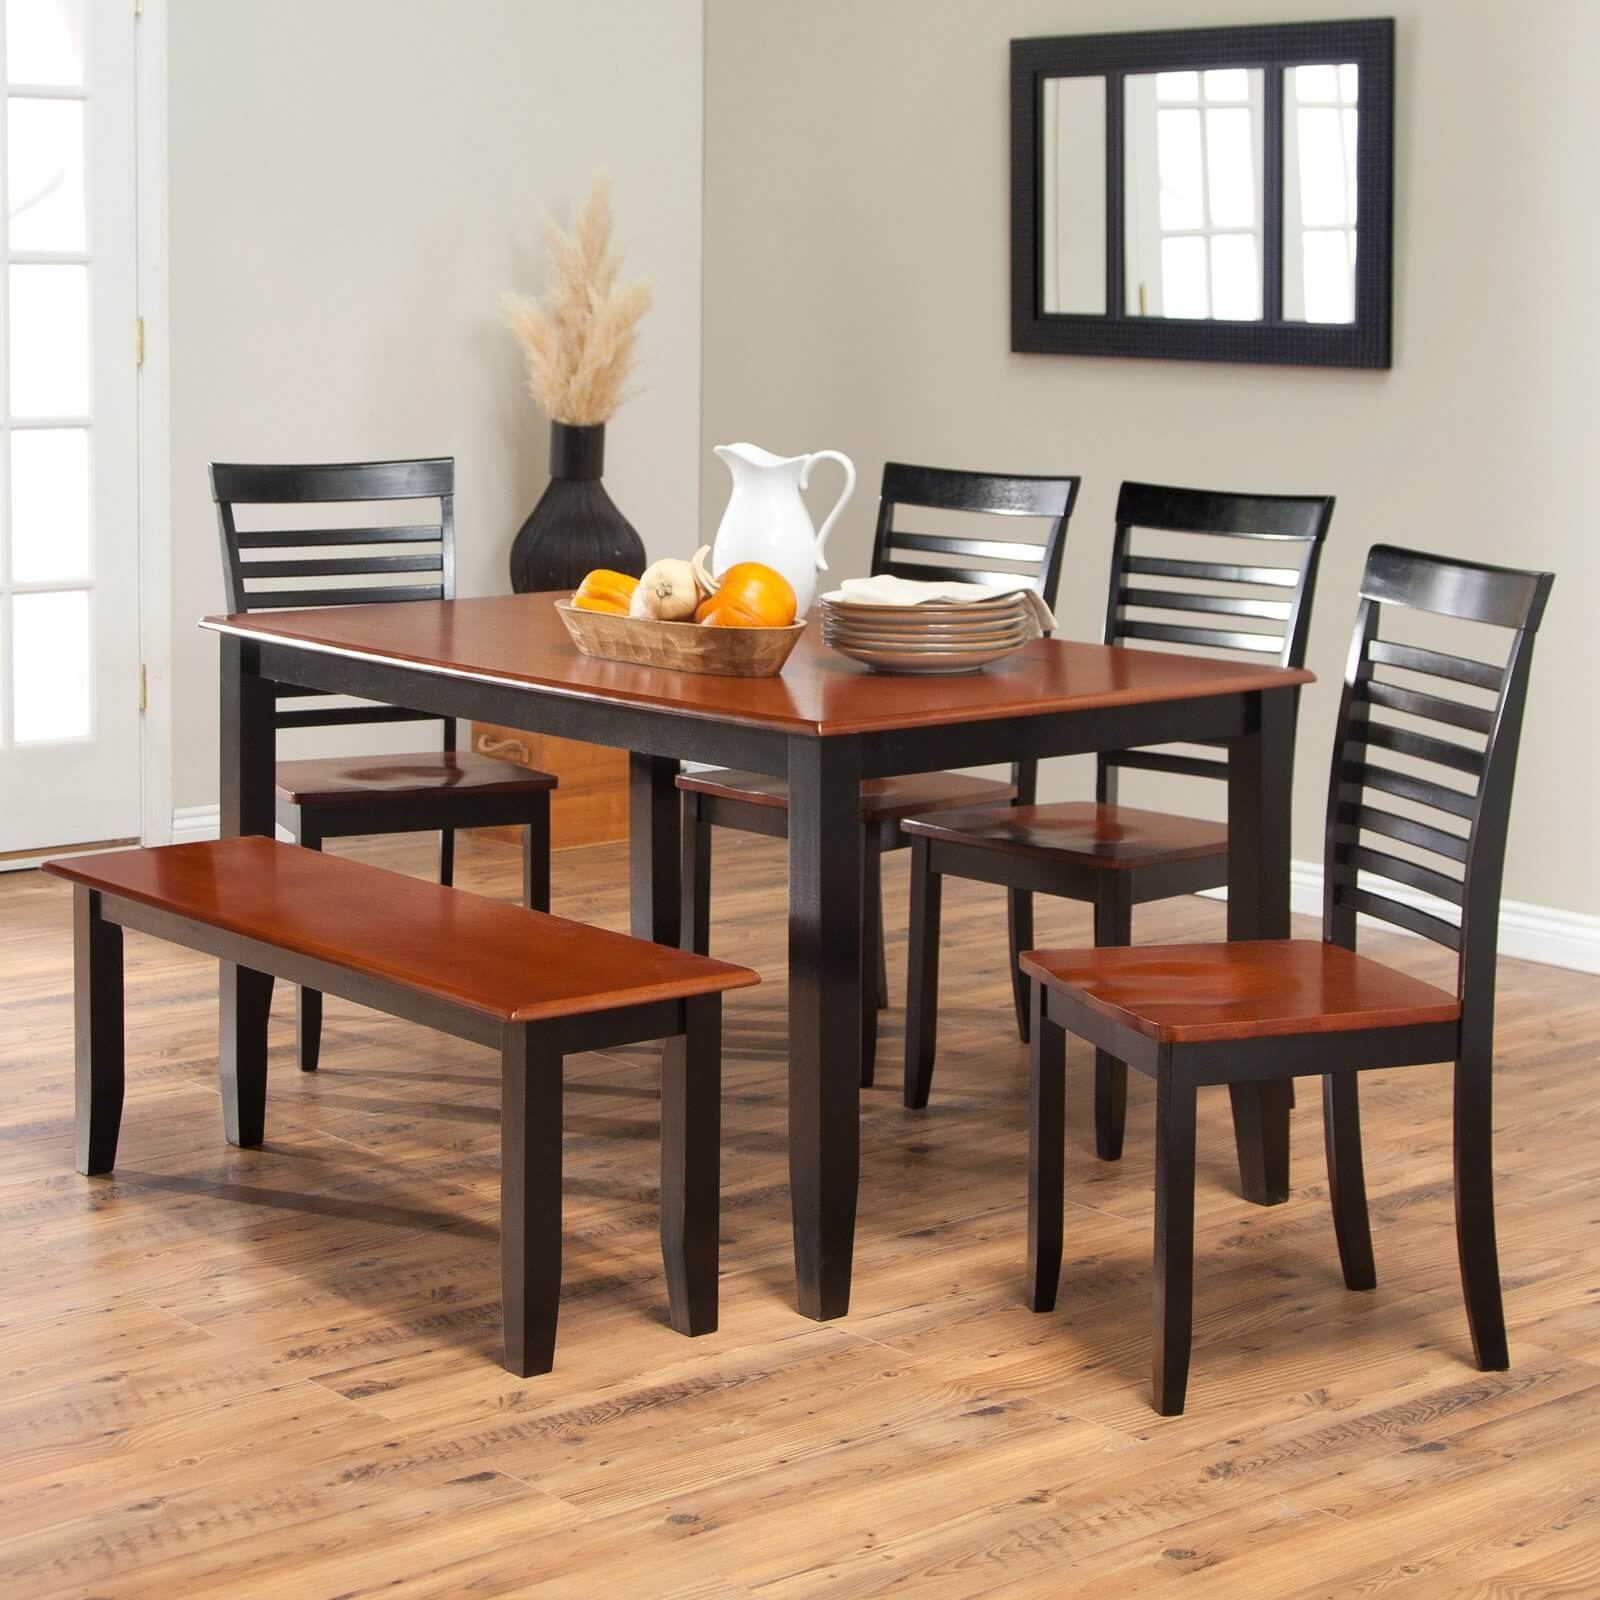 Simple two-toned dining set with bench. The seats and table top are cherry finish; the legs and chair backs are a black finish.